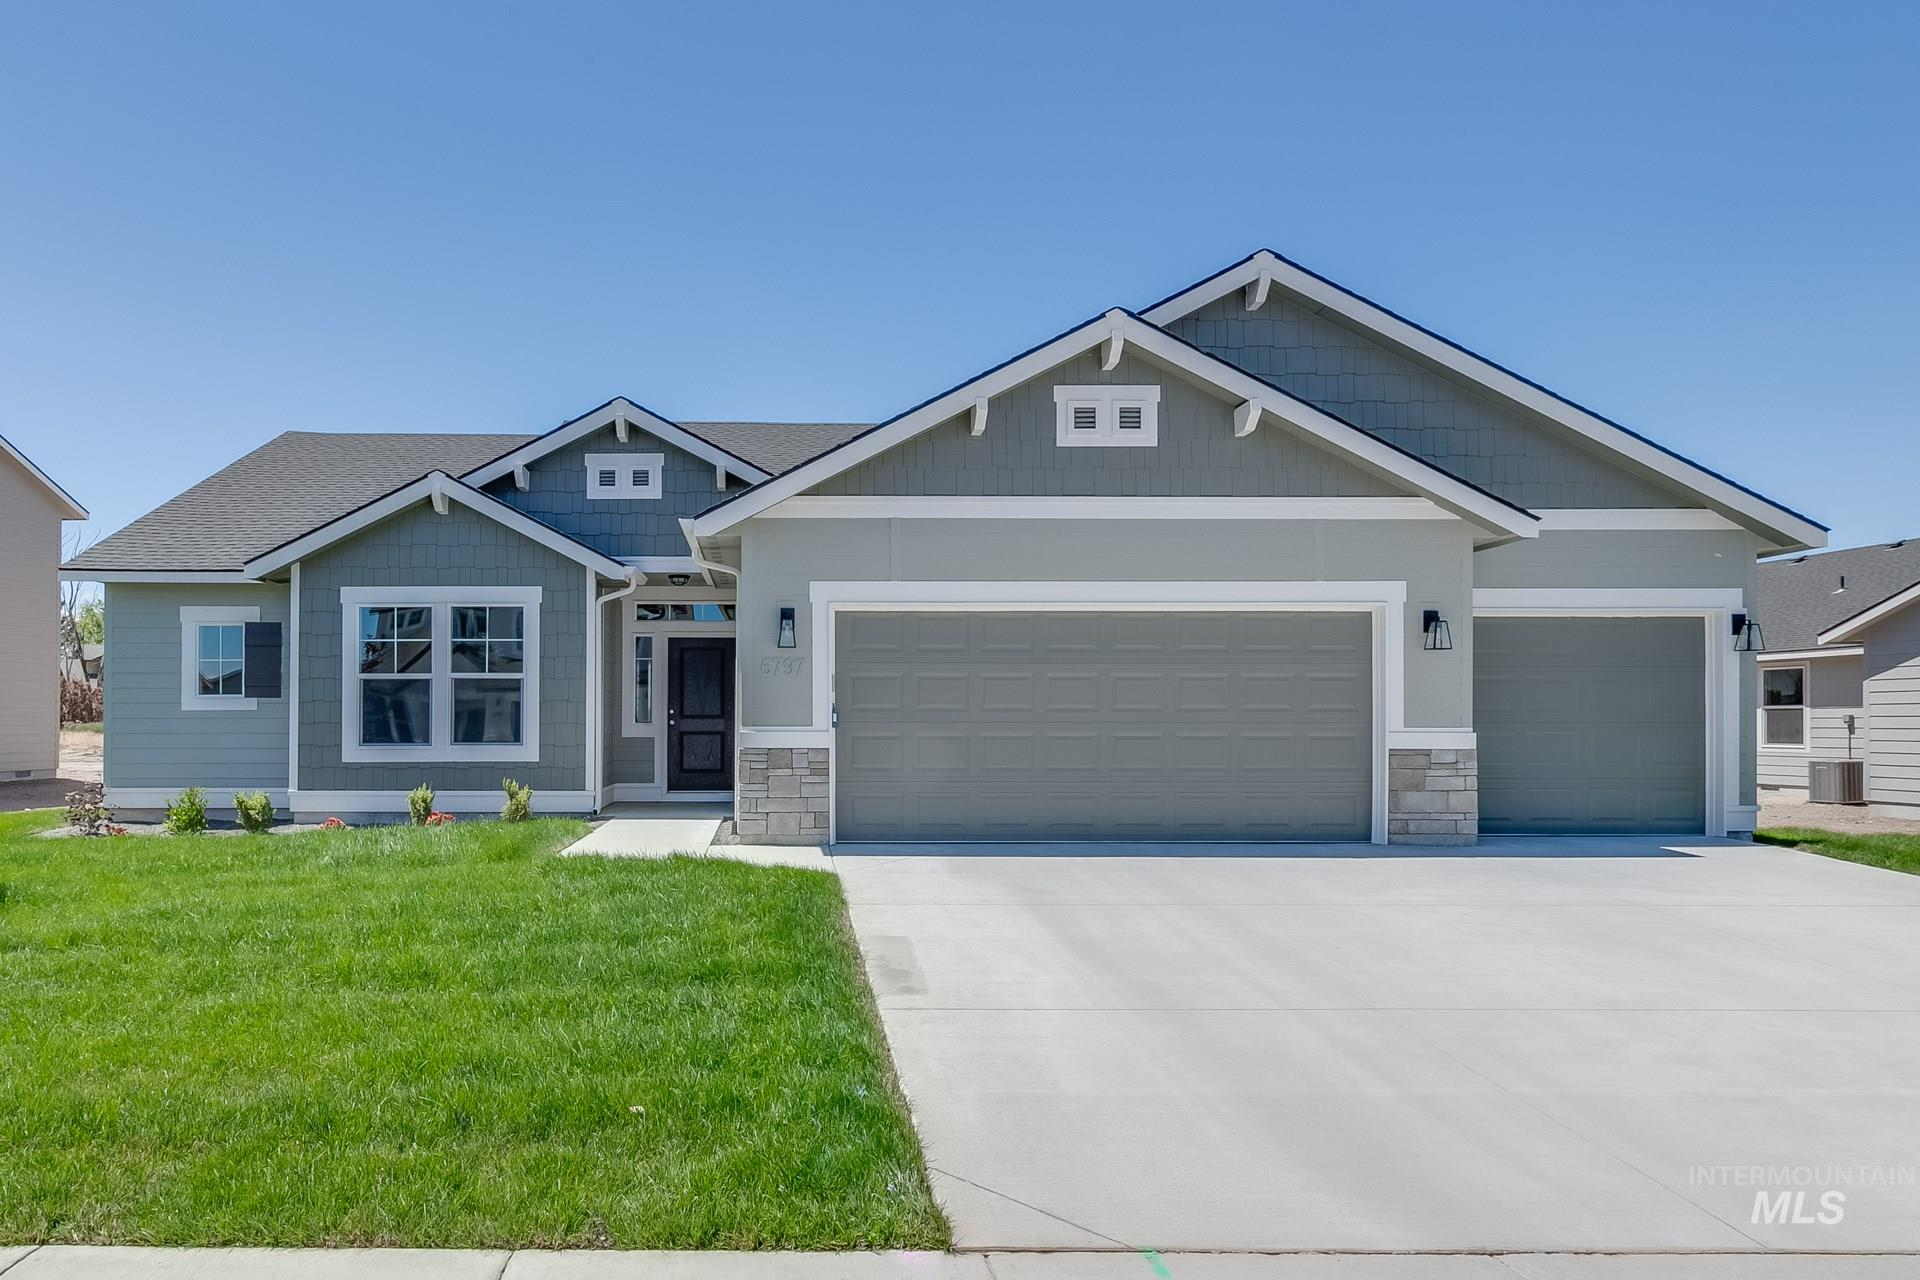 Photo for 5016 Danville St., Caldwell, ID 83605 (MLS # 98775585)